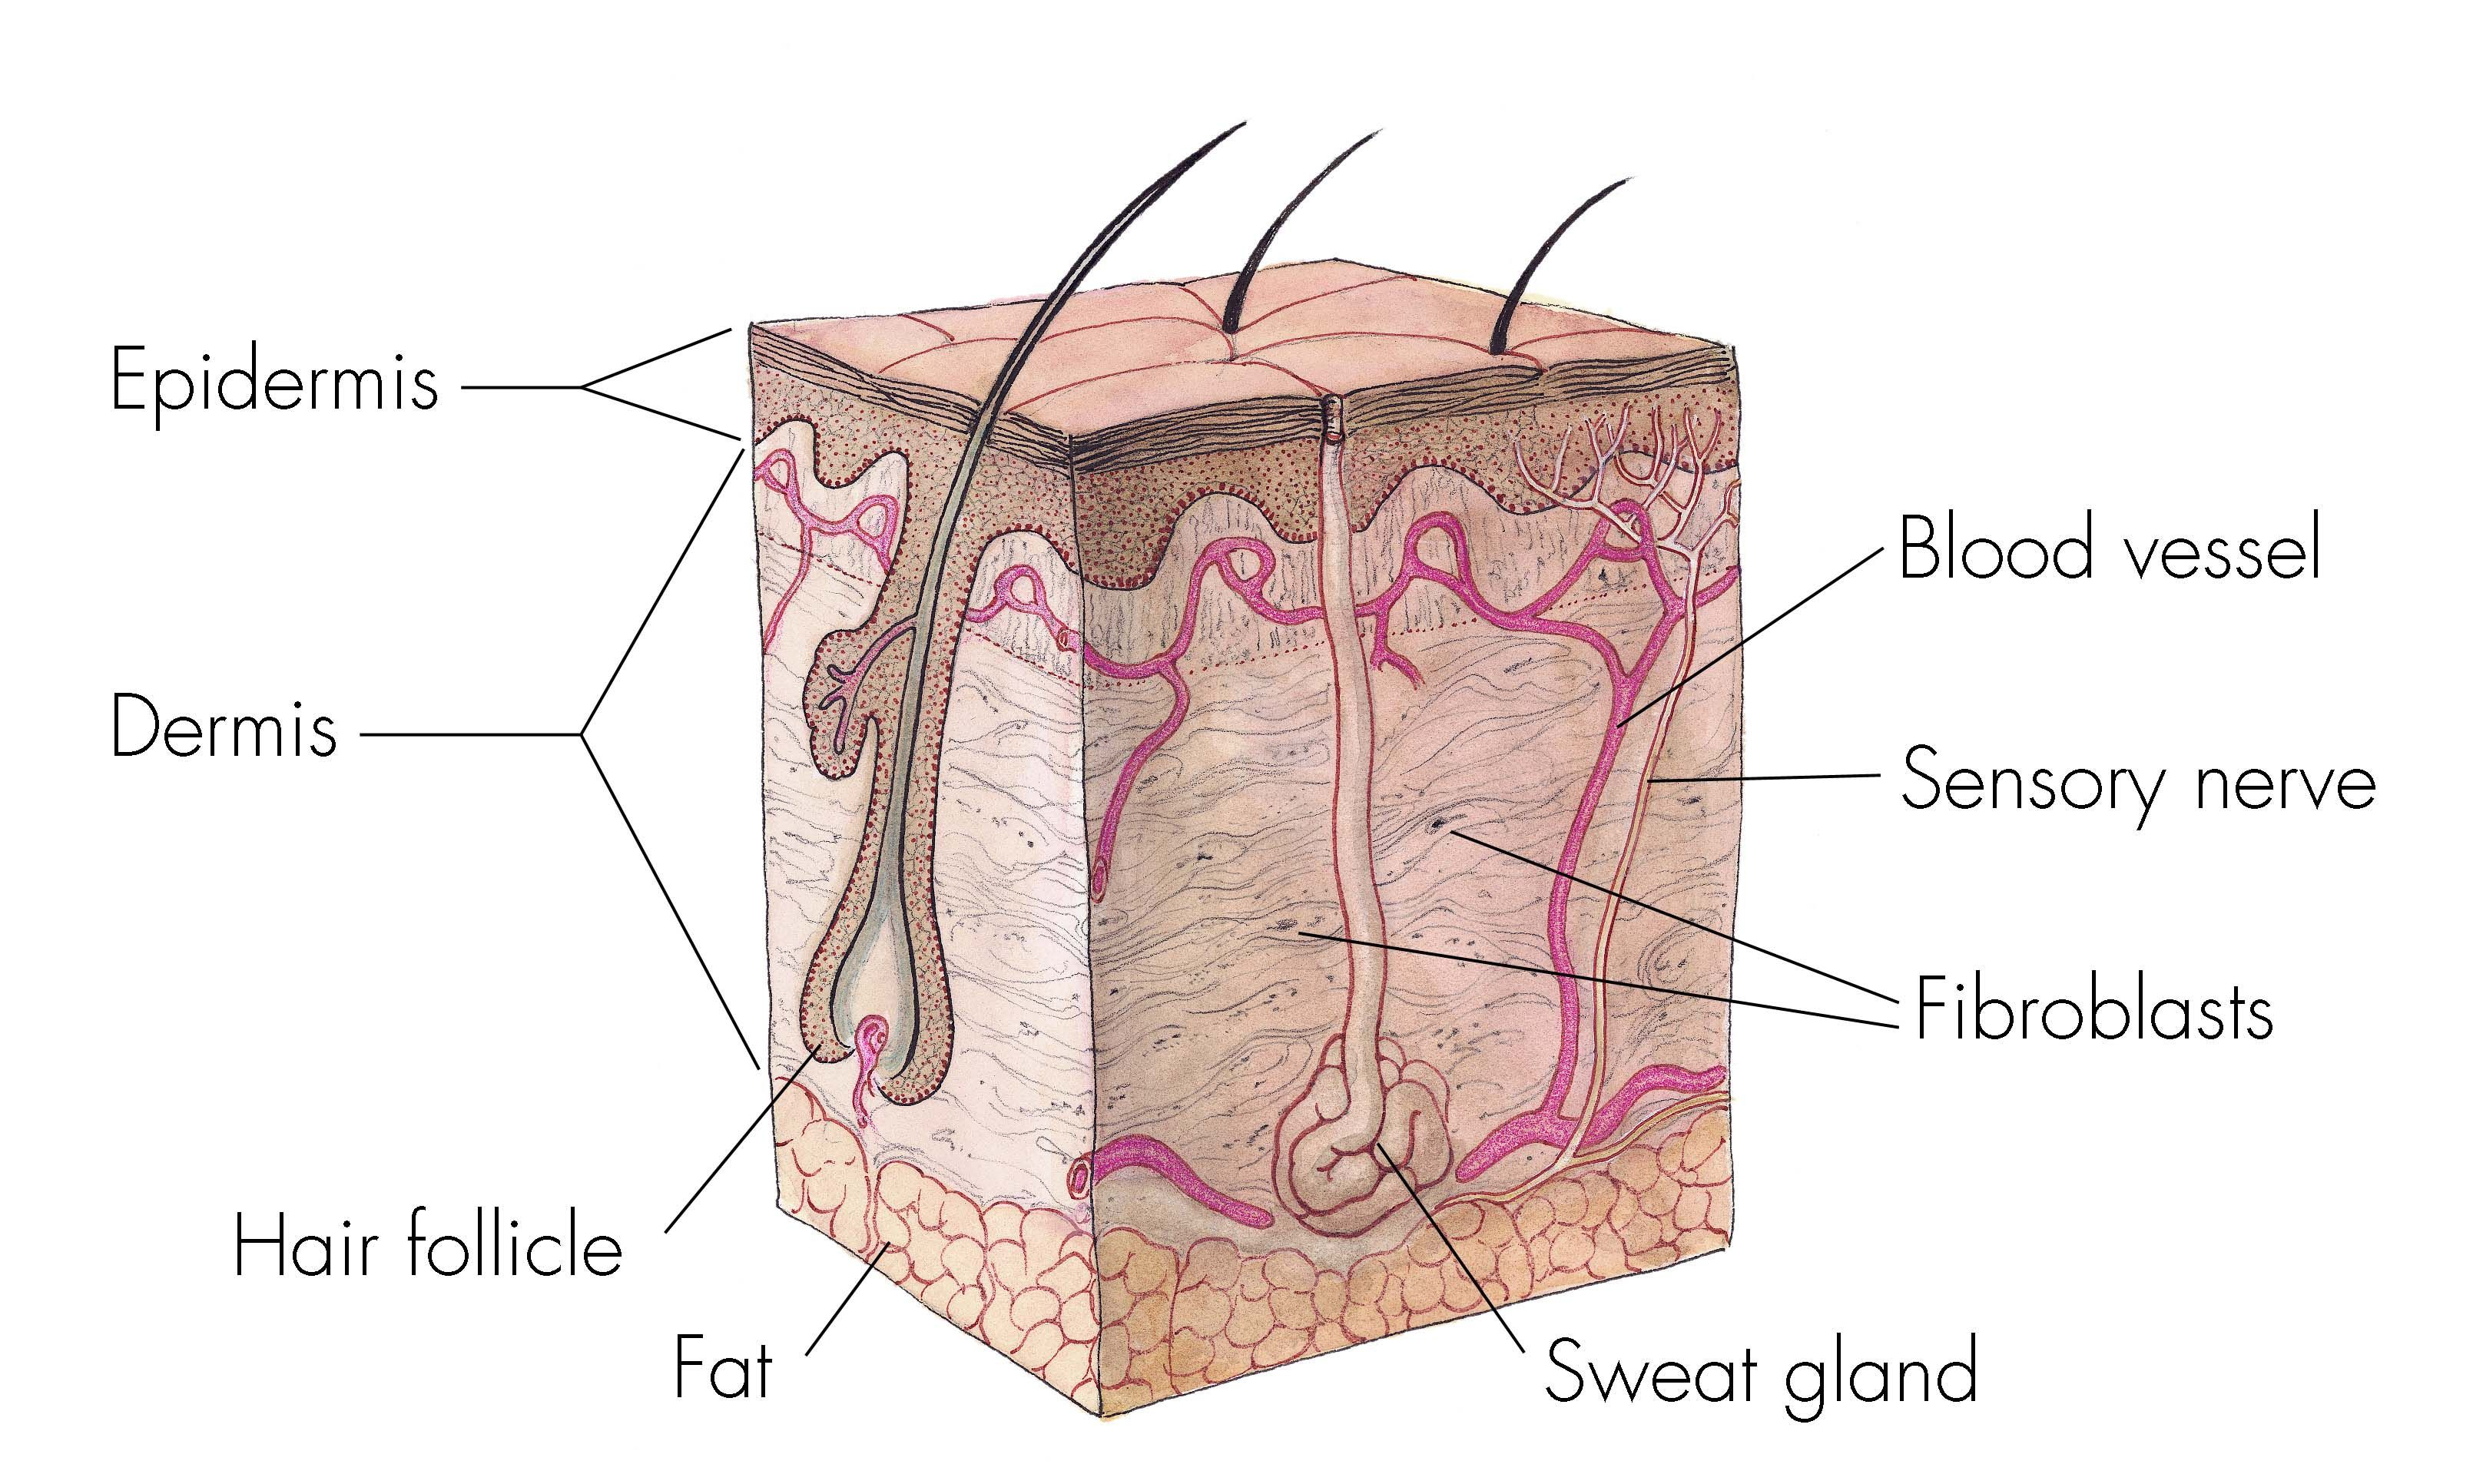 Cross Section Of Skin Anatomy Shows Layers And Different